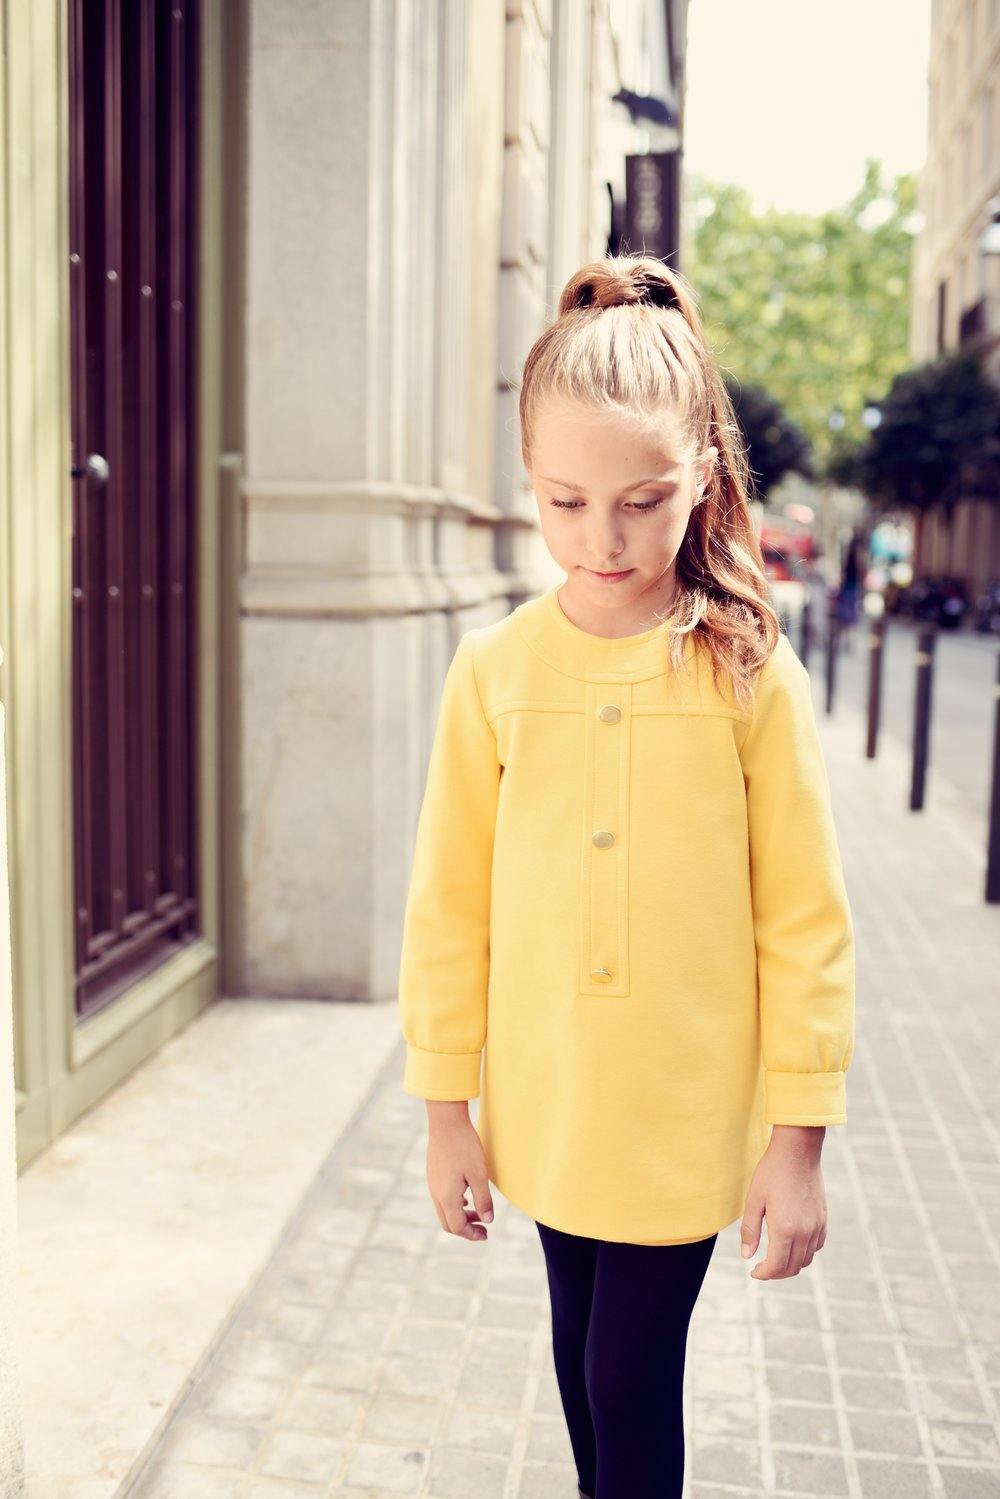 Enfant+Street+Style+by+Gina+Kim+Photography-13.jpeg